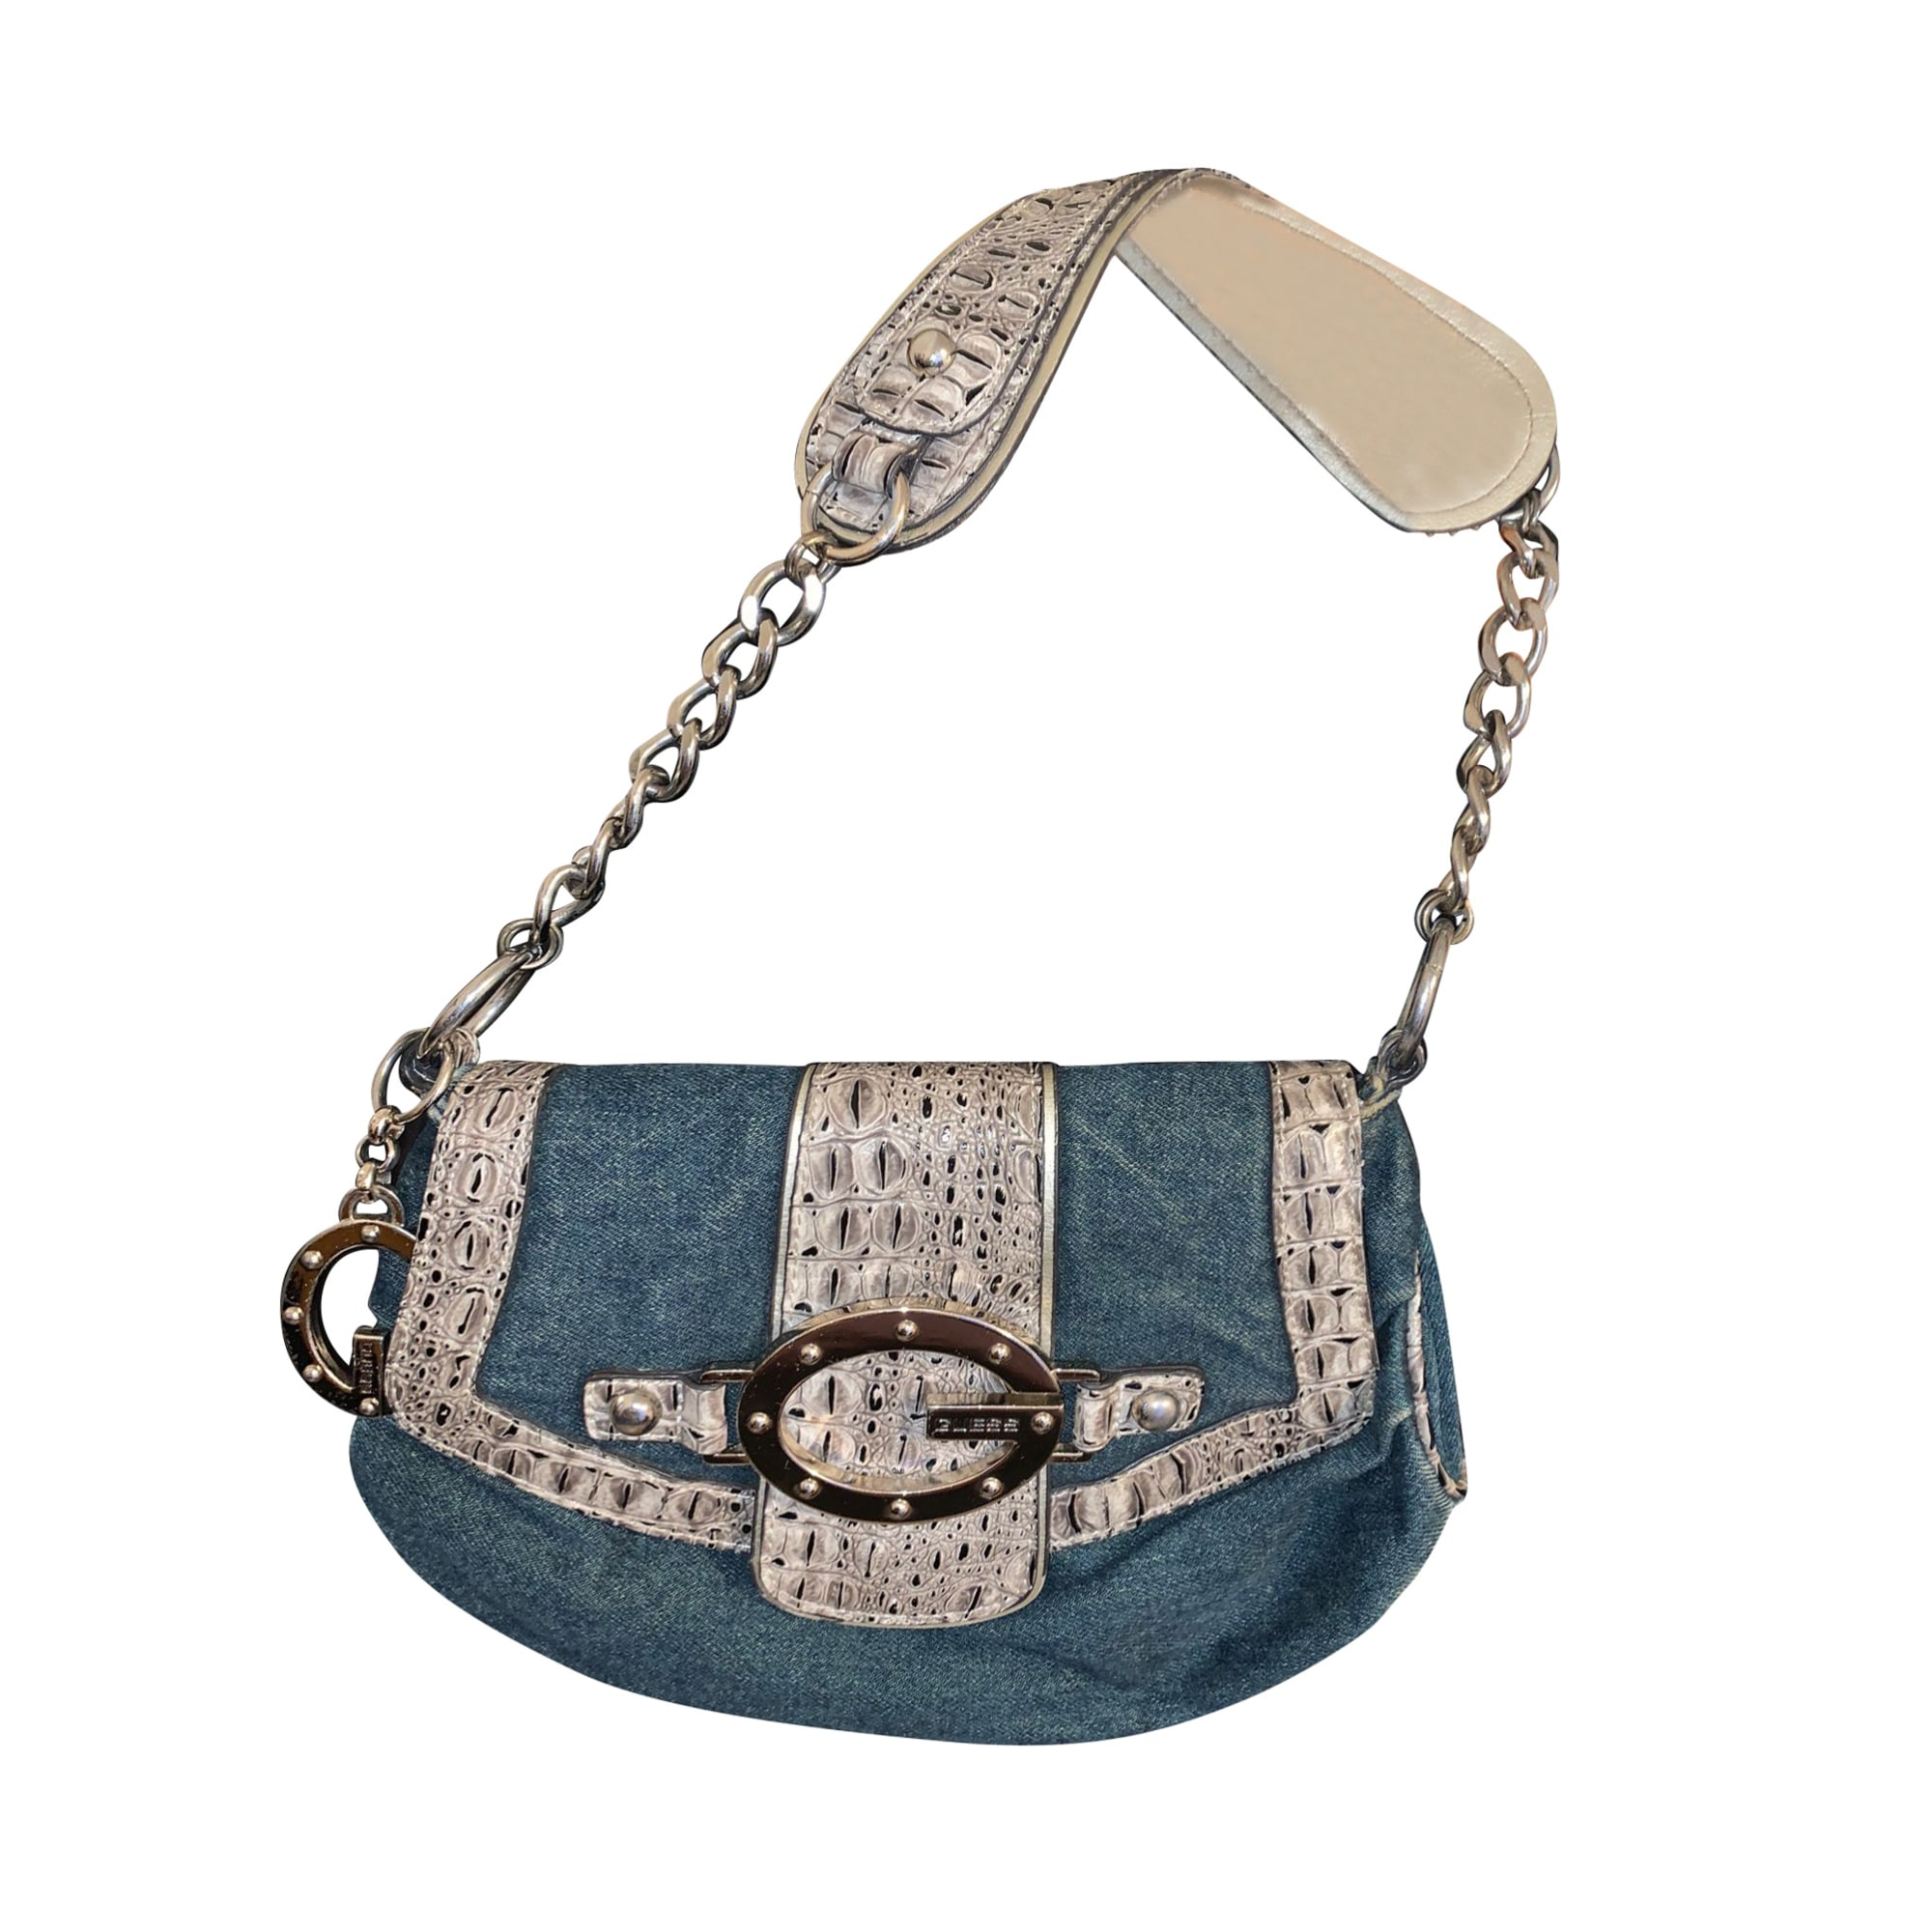 Non-Leather Handbag GUESS Blue, navy, turquoise